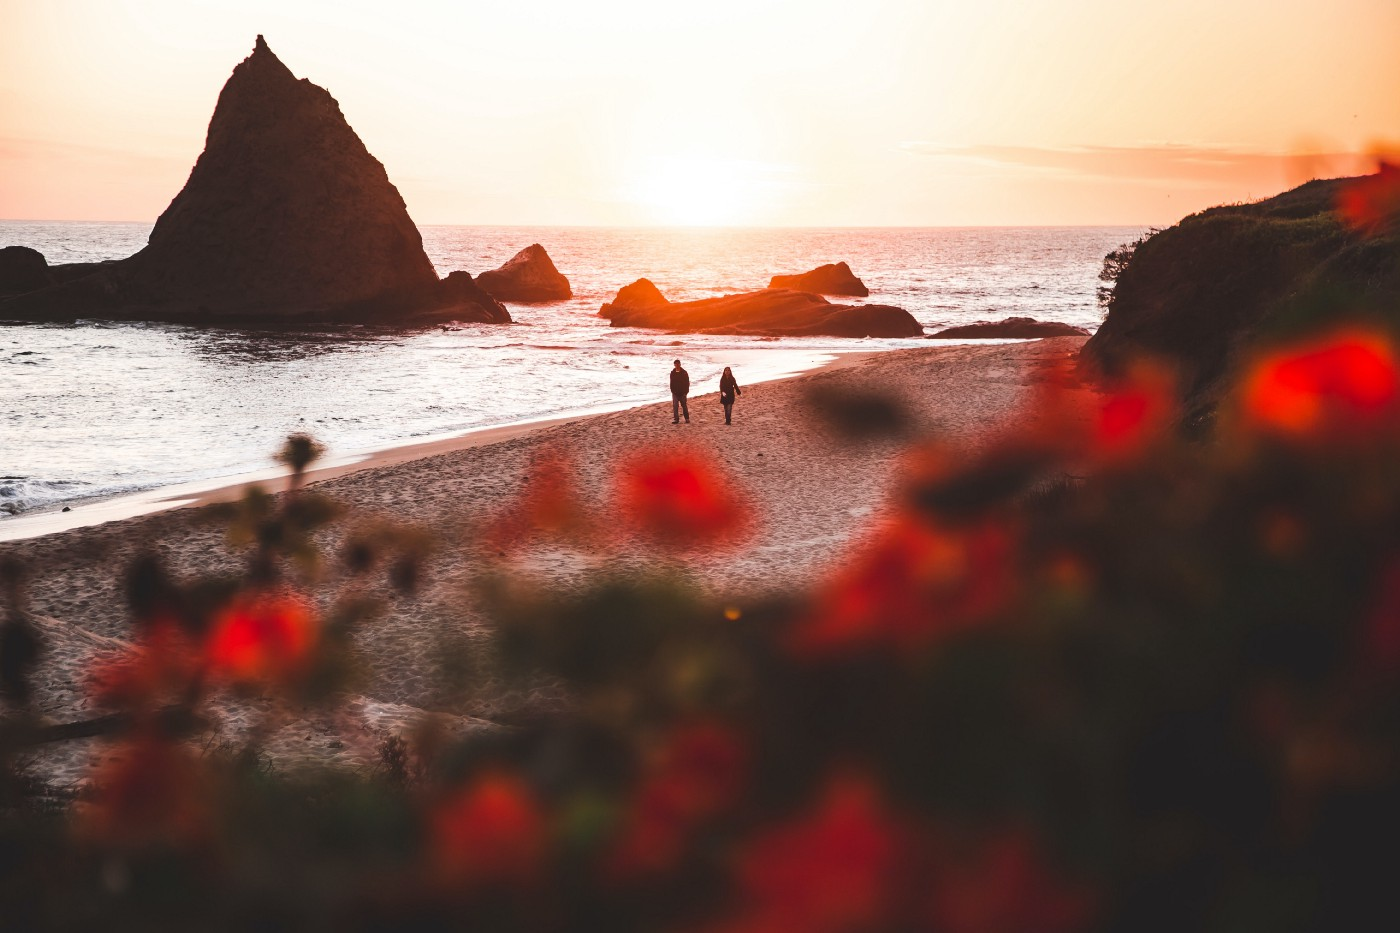 Couple walking by the sea, red wildflowers waving in the distance.